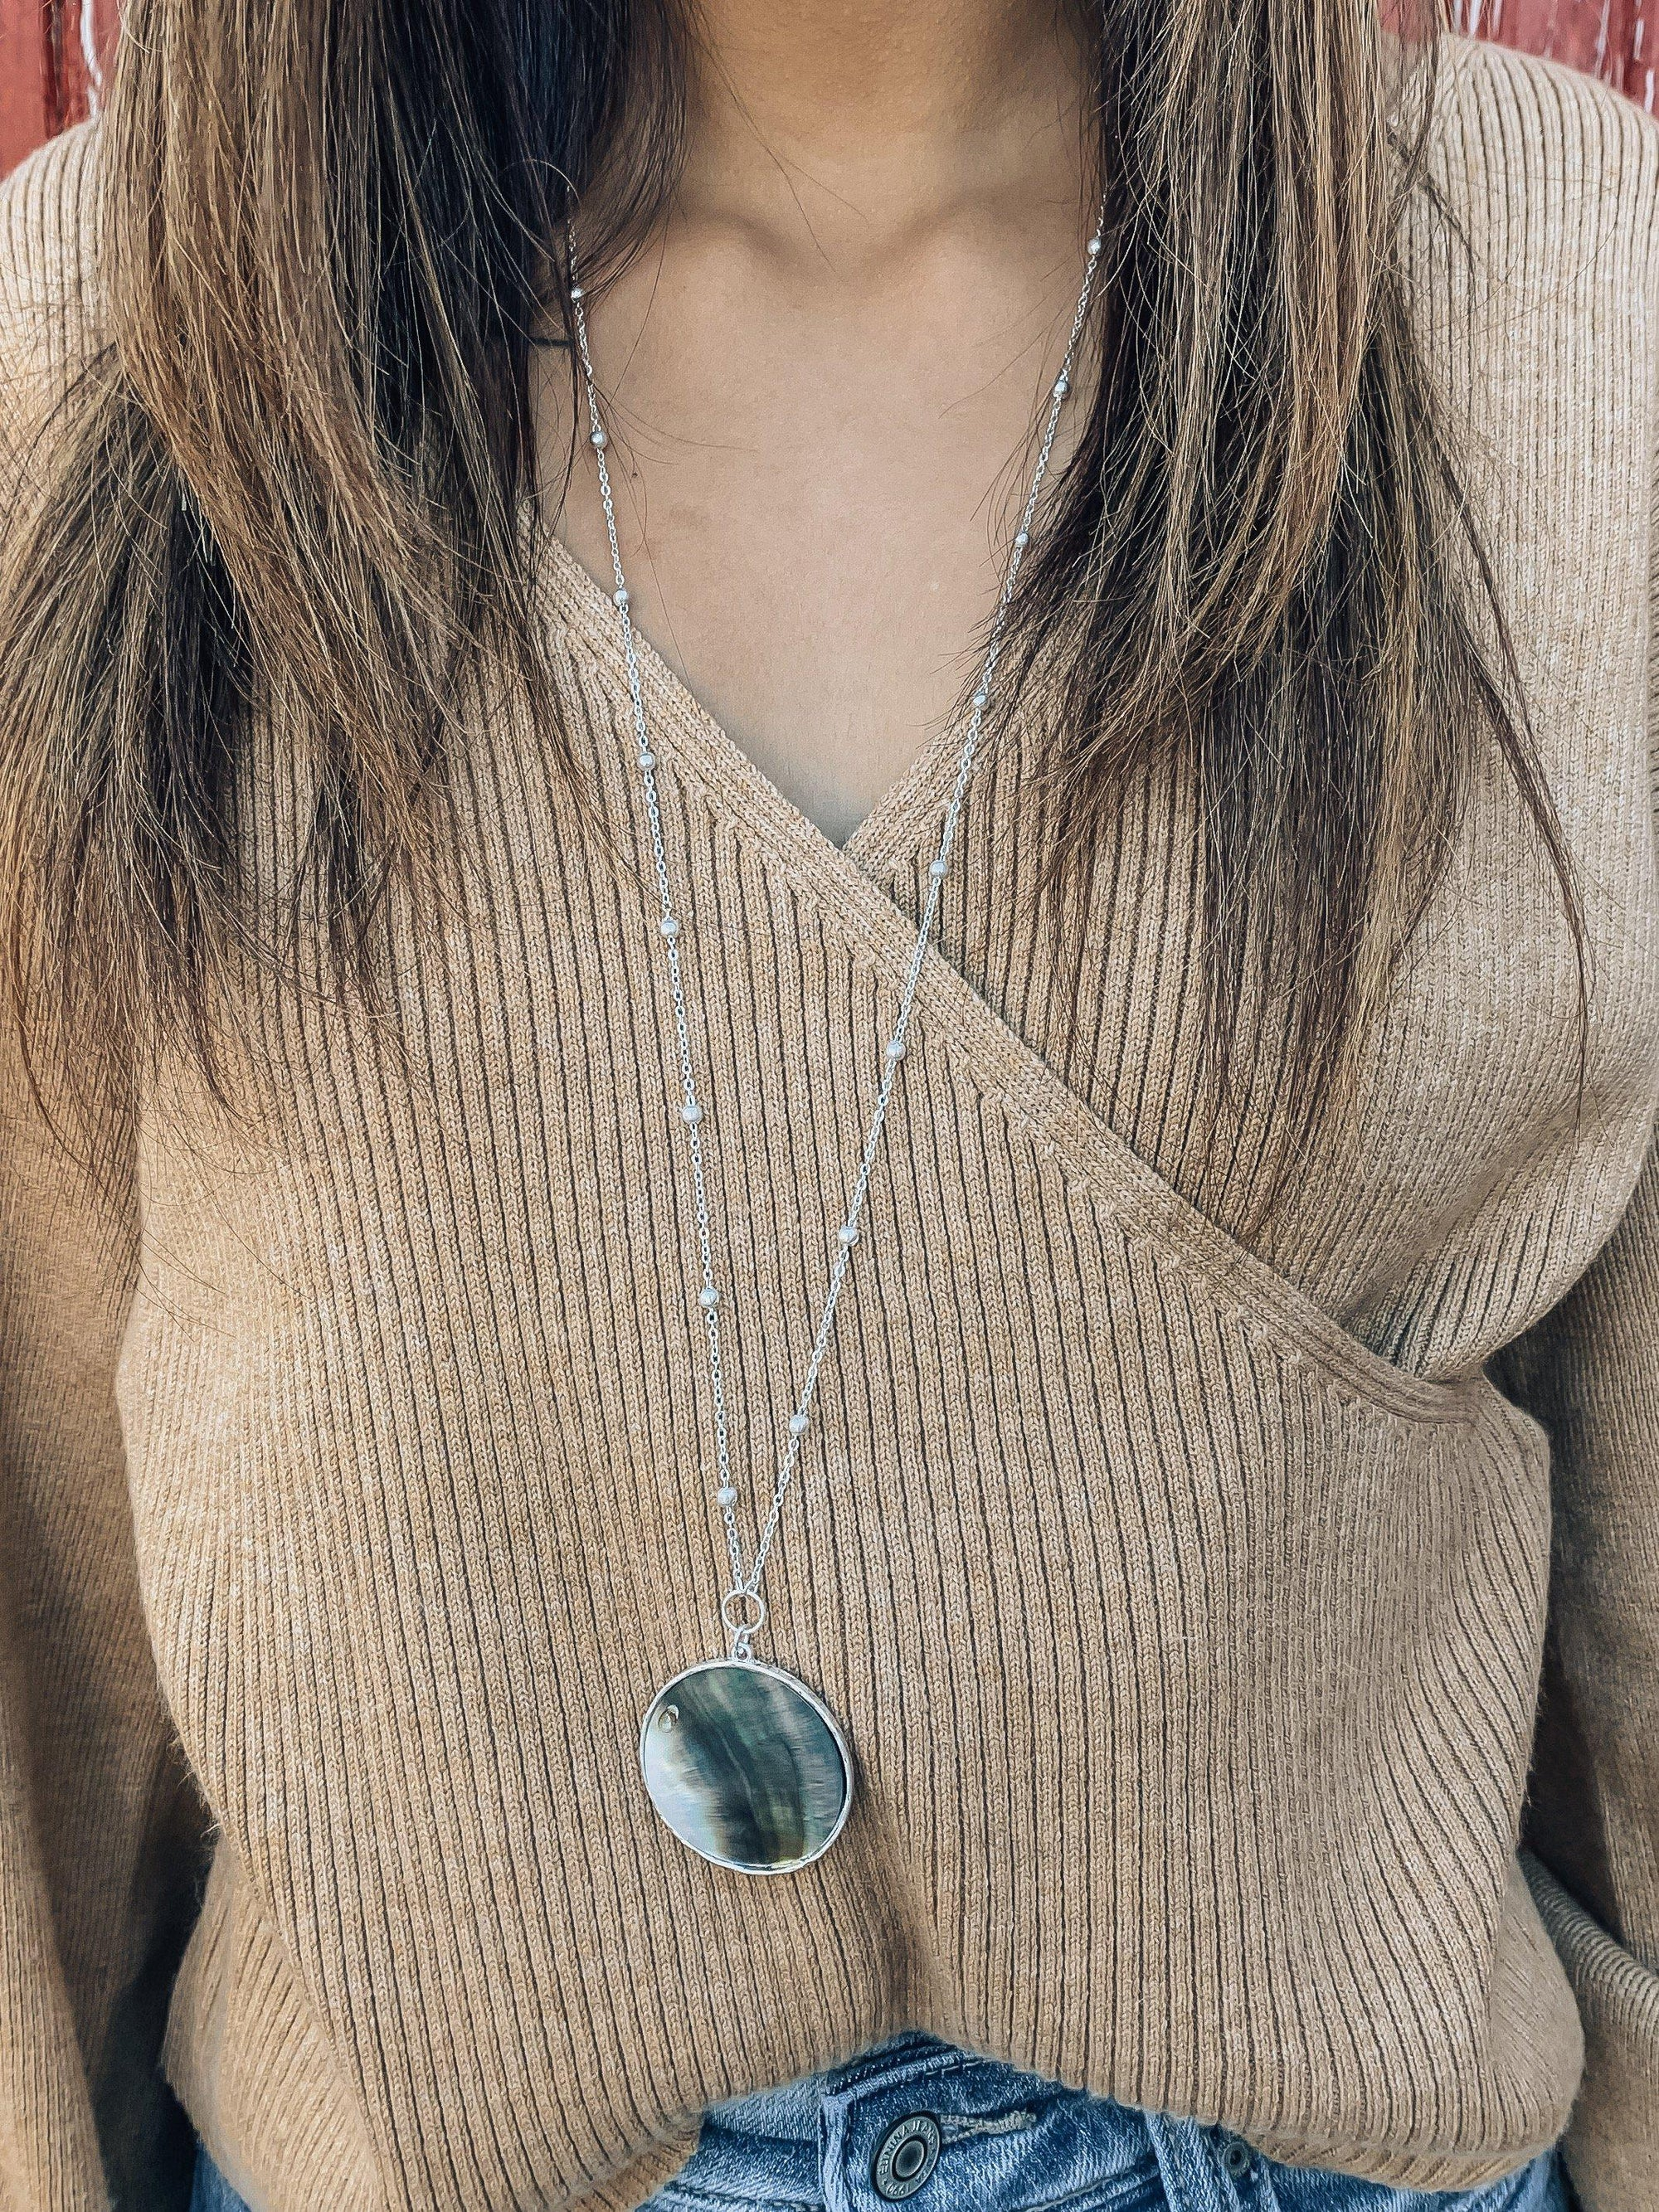 Ocean Eye Necklace-Women's JEWELRY-New Arrivals-Runway Seven